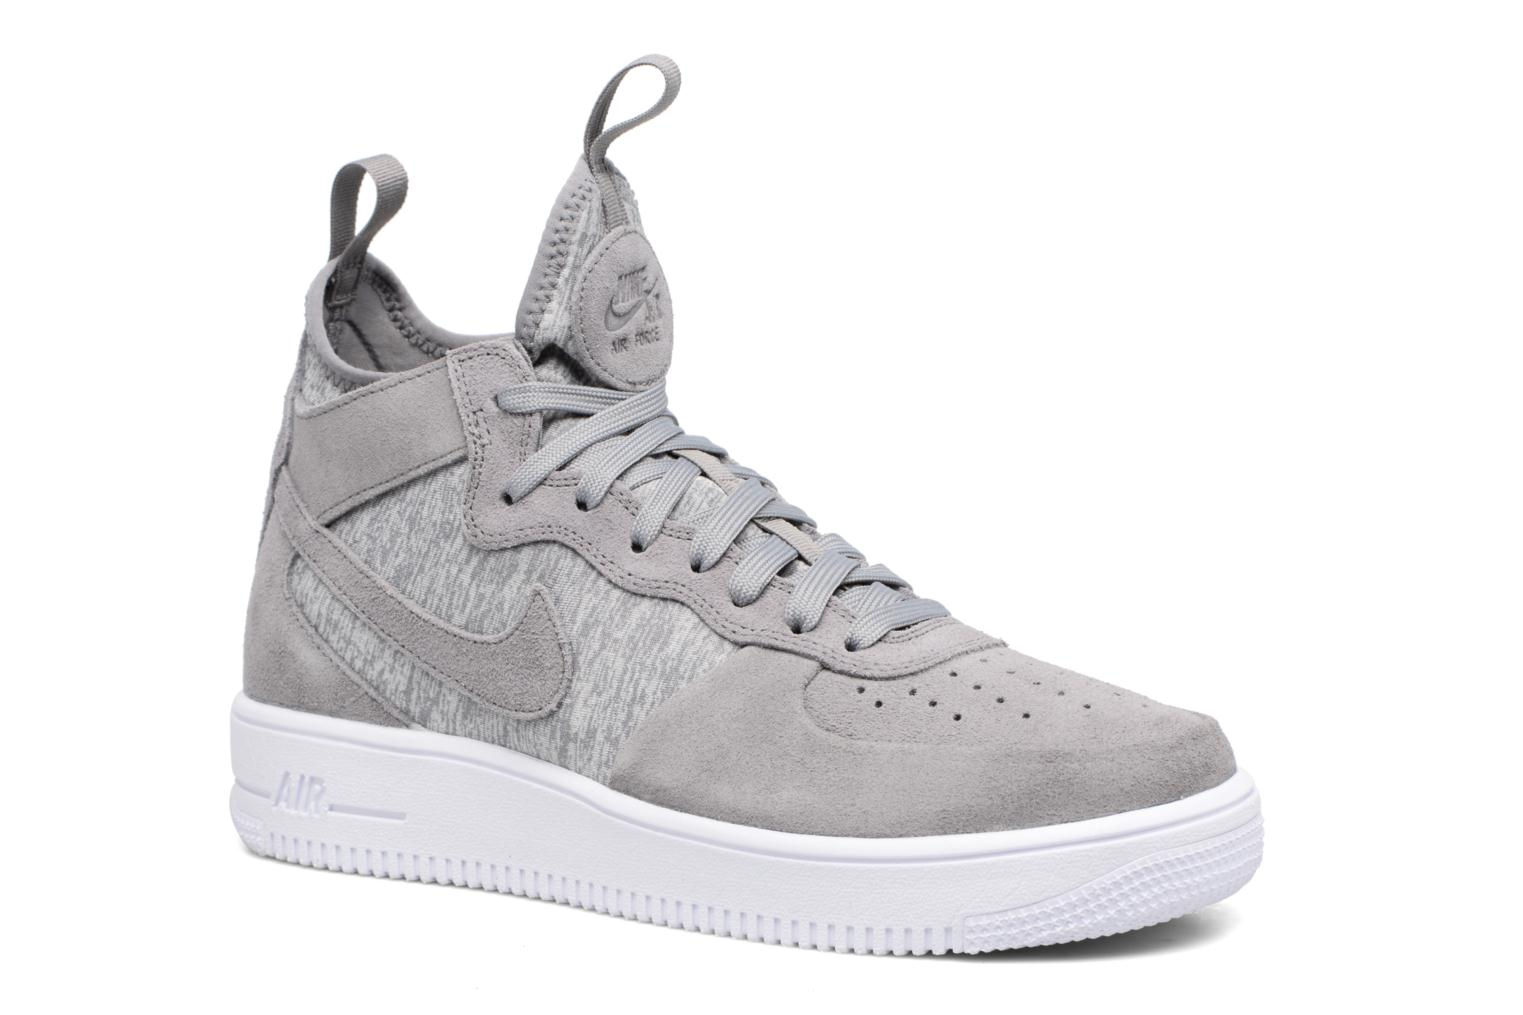 Nike Air Force 1 Ultraforce Mid Prm (Grey) Trainers chez Sarenza